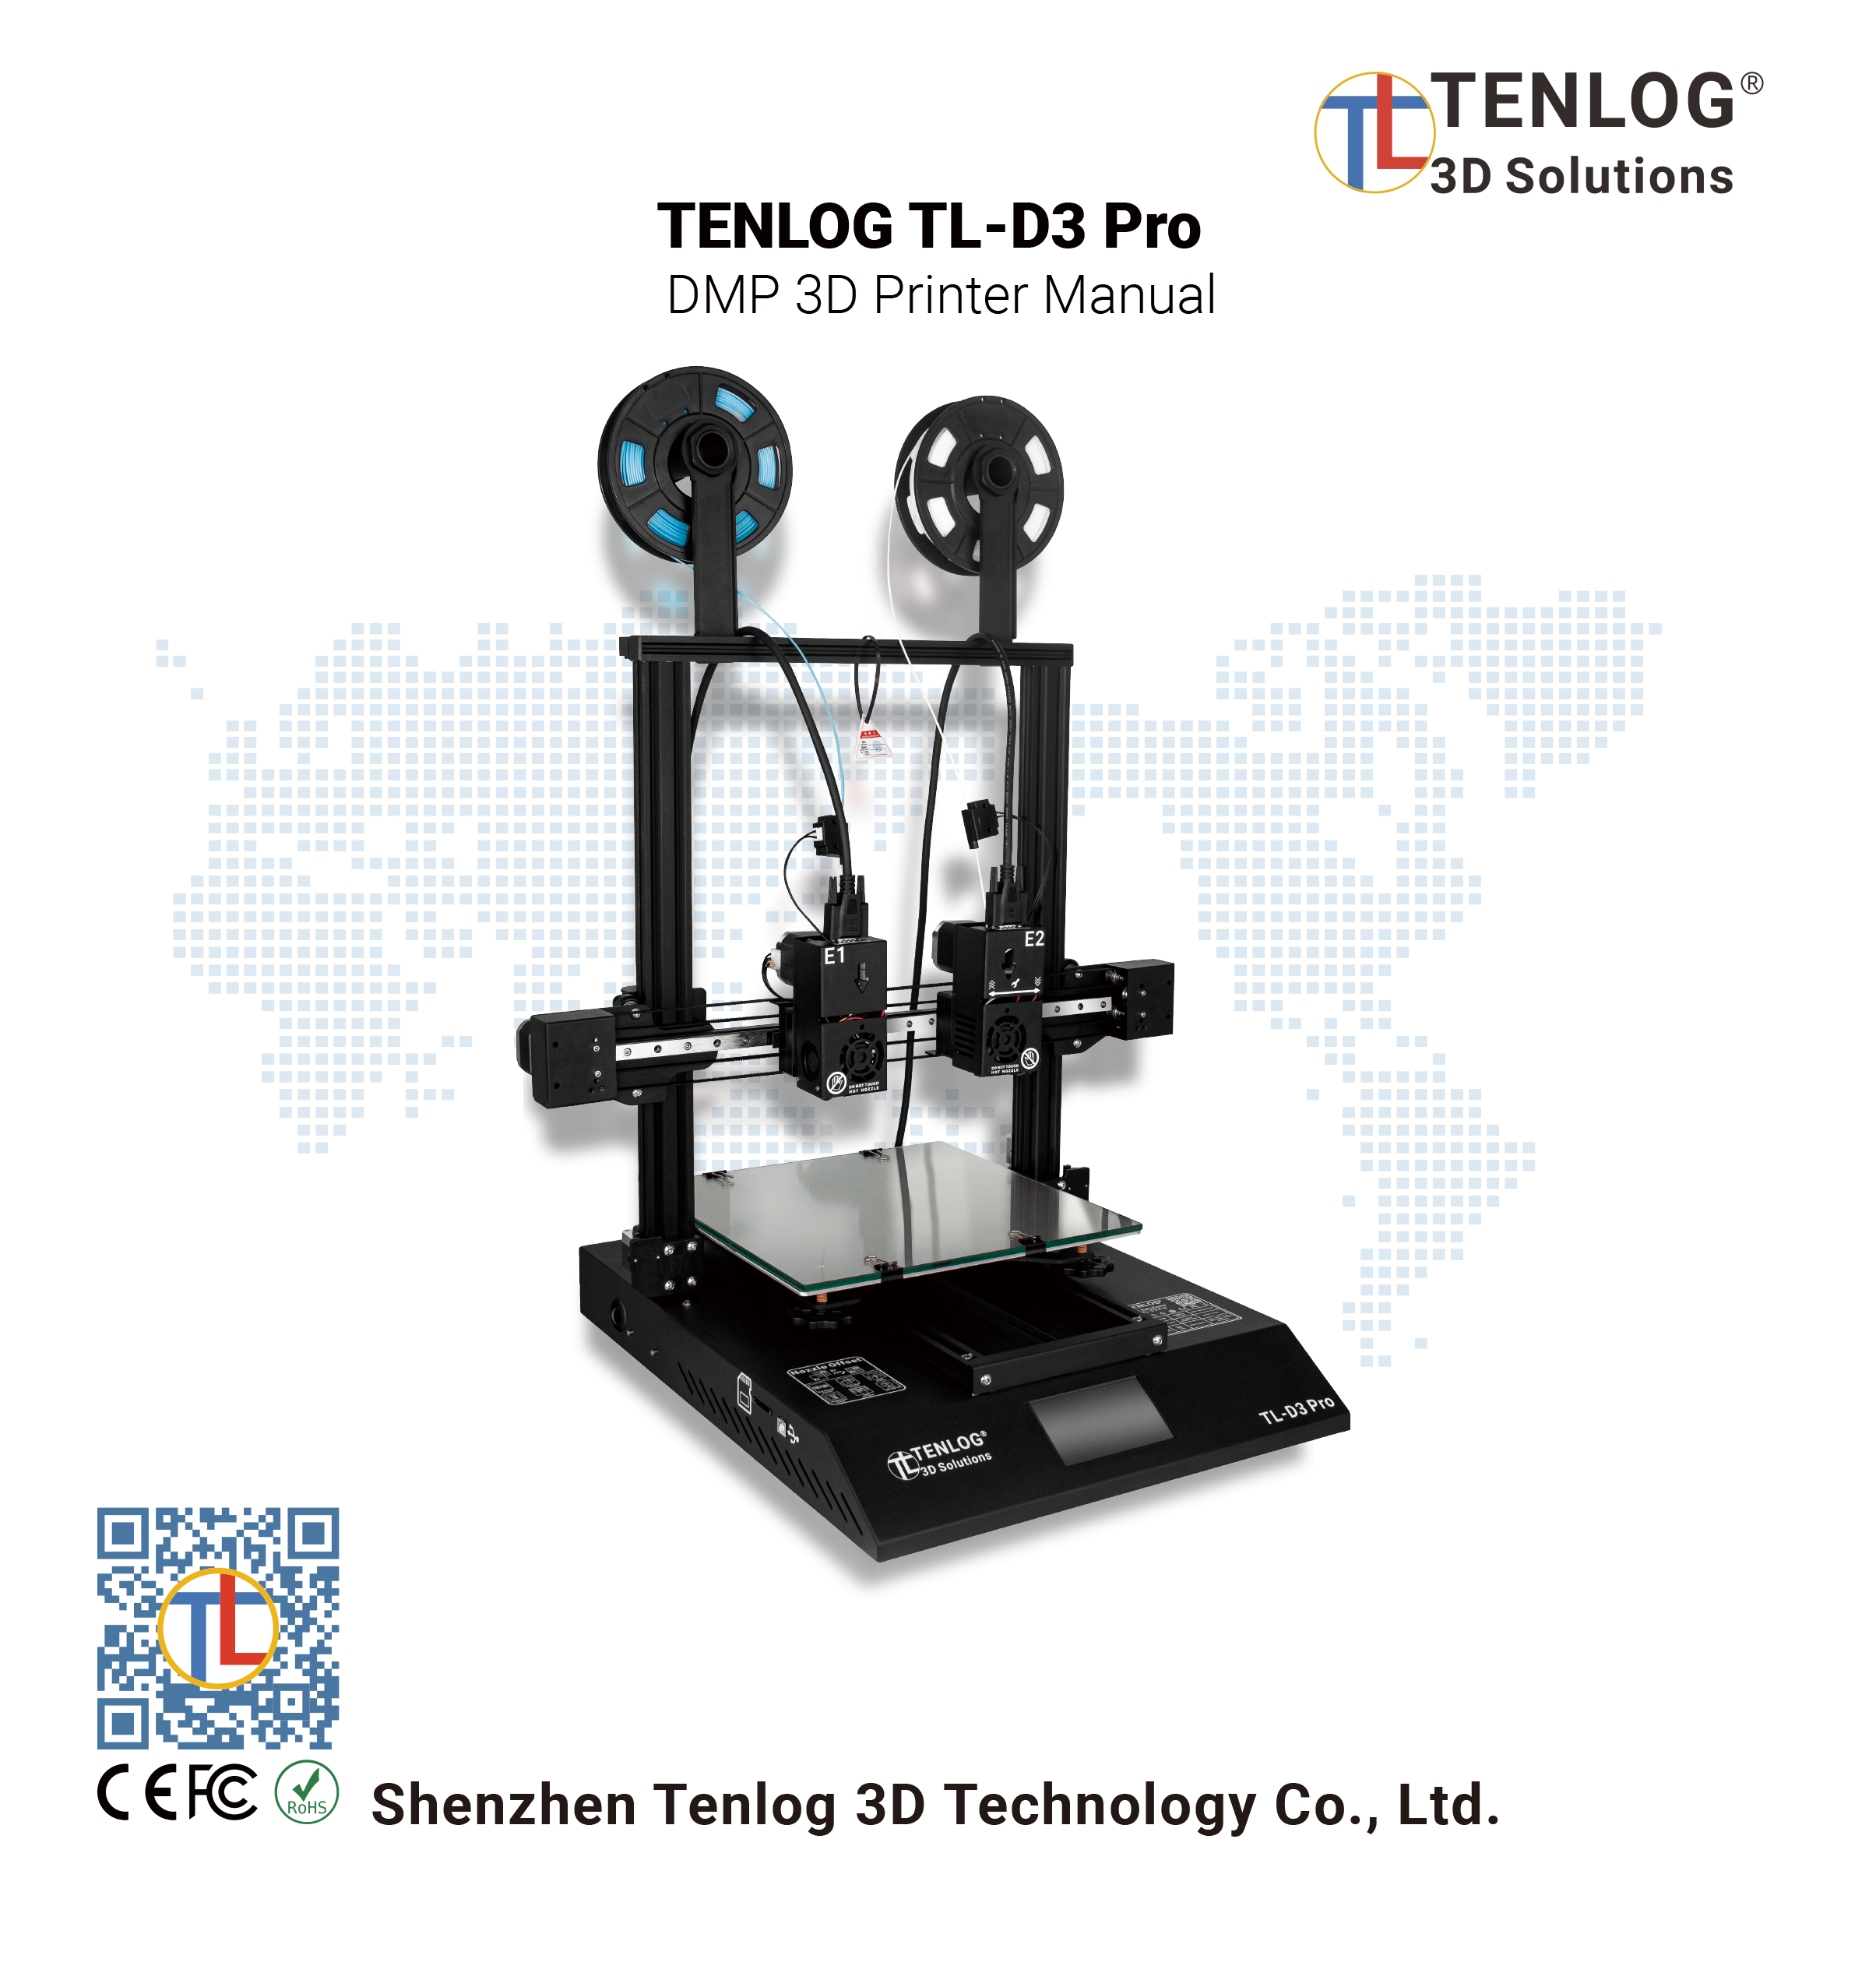 Tenlog TL-D3 Pro DMP 3D Printer Manual 1